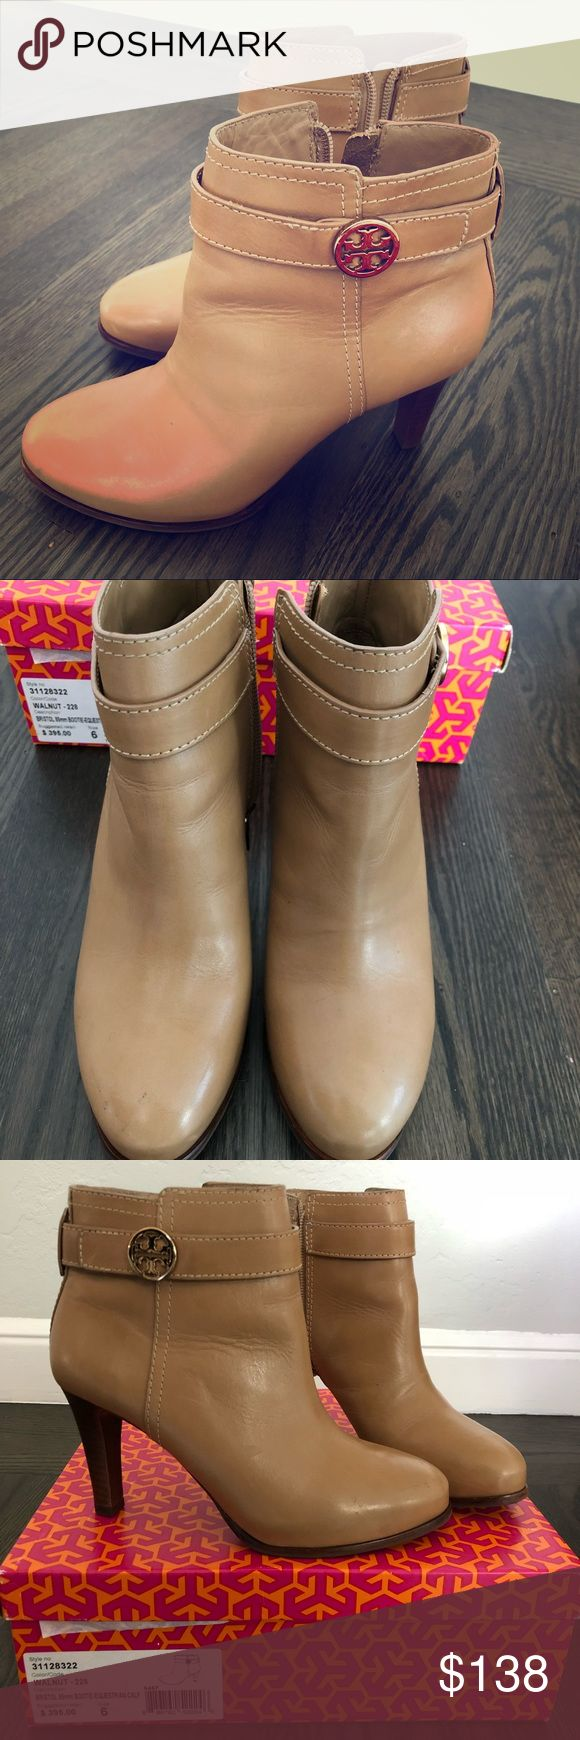 "Tory Burch Bristol Bootie Like new - only worn a few times. Size 6 with original box * the Bristol Bootie, an effortless style for day-to-evening dressing. The sleek design, made of smooth calf leather, features a convenient side zipper and small signature gold logo for a clean, minimal look.  Looks great with:  Slim pants, skinny jeans and leggings  Trumpet and pencil skirts  Full, knee-length dresses 3 1/2"" Heel.  Leather upper. Side zip closure. Round toe. Gold tone metal negative logo…"